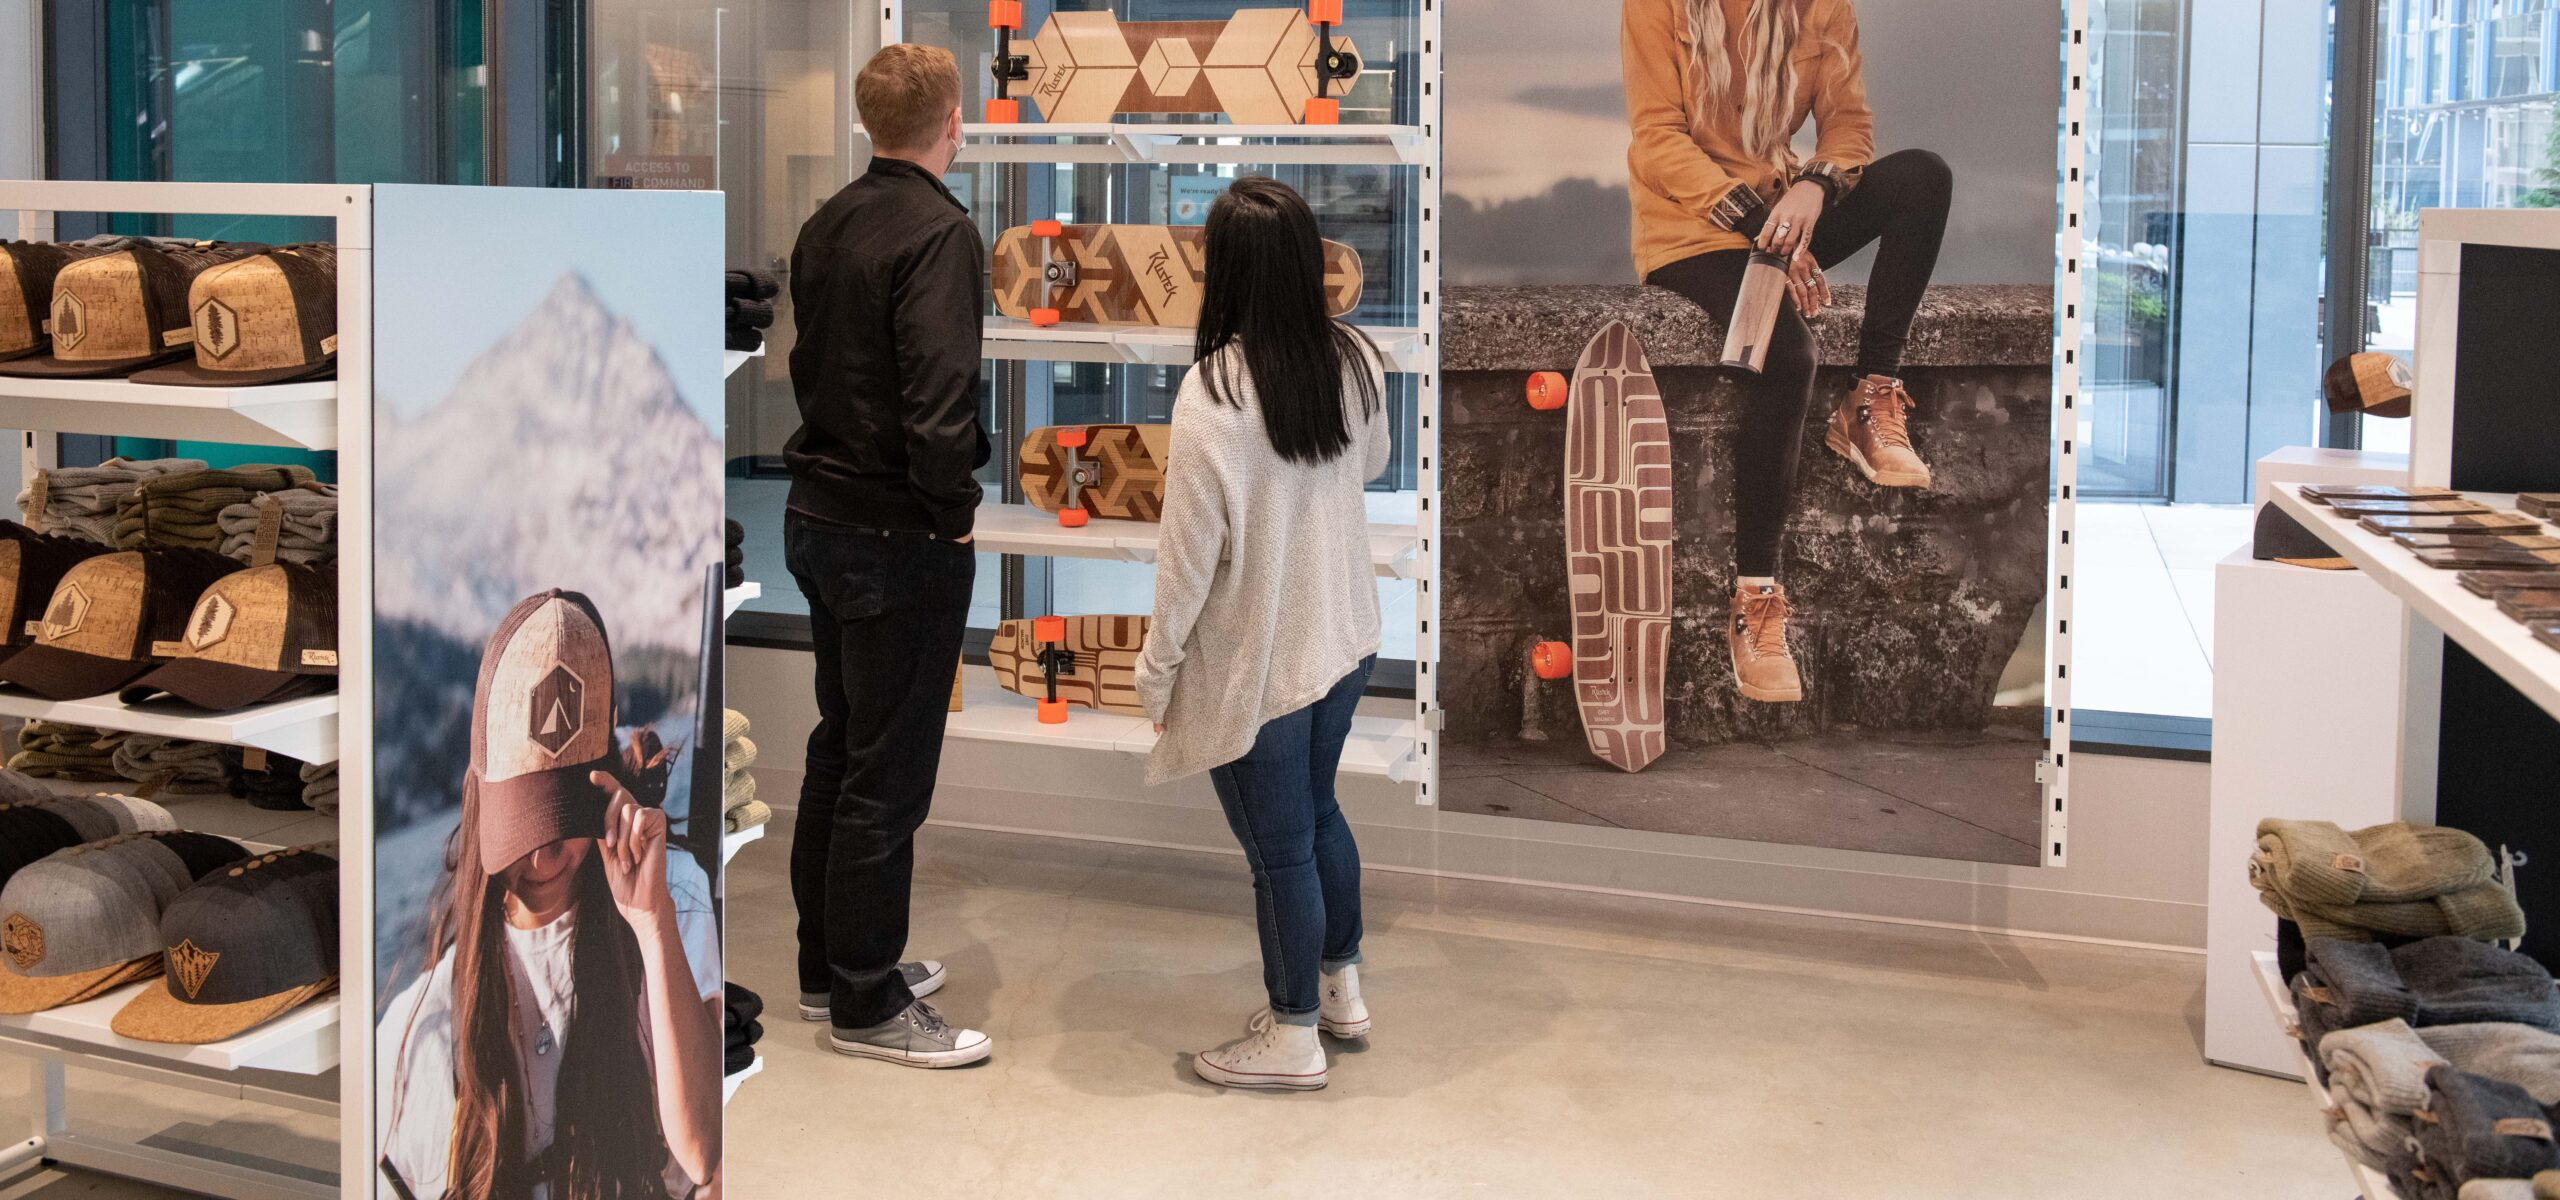 Man and woman looking at wooden skateboards in a store.